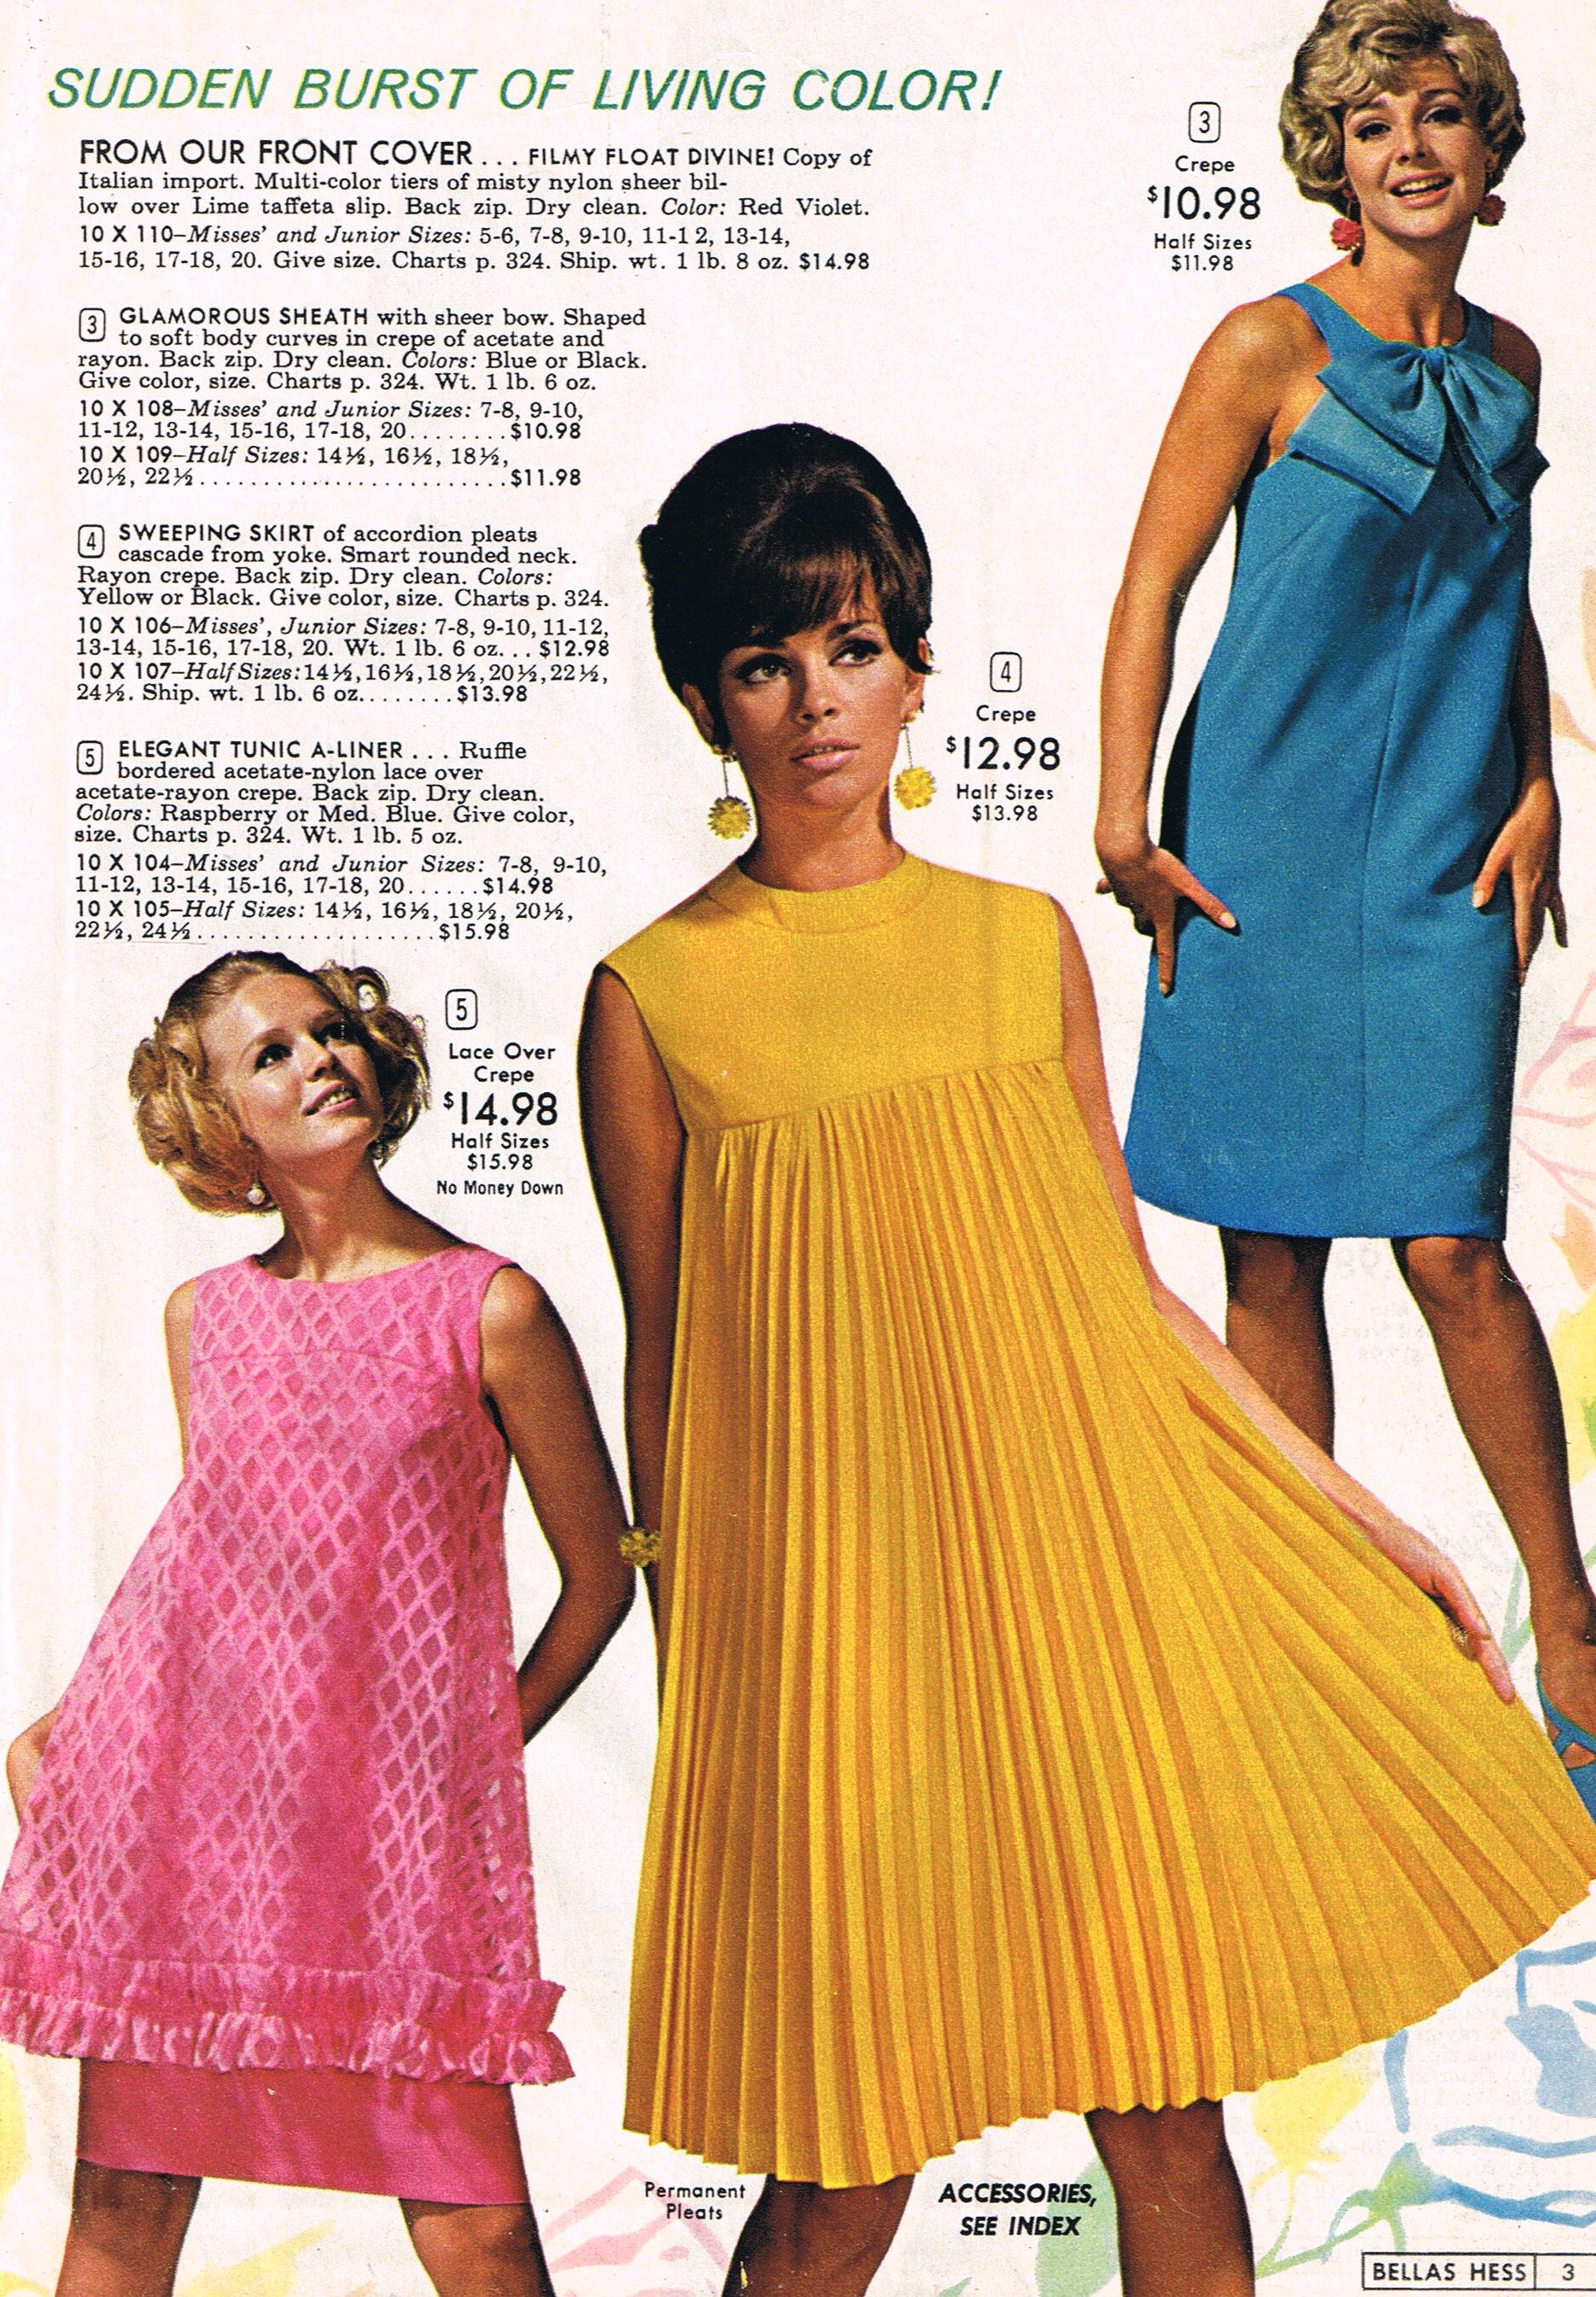 Pin By Retro Vs On Mid Mod Mail Order Fashion Sixties Fashion 60s Fashion Fashion [ 2690 x 1869 Pixel ]